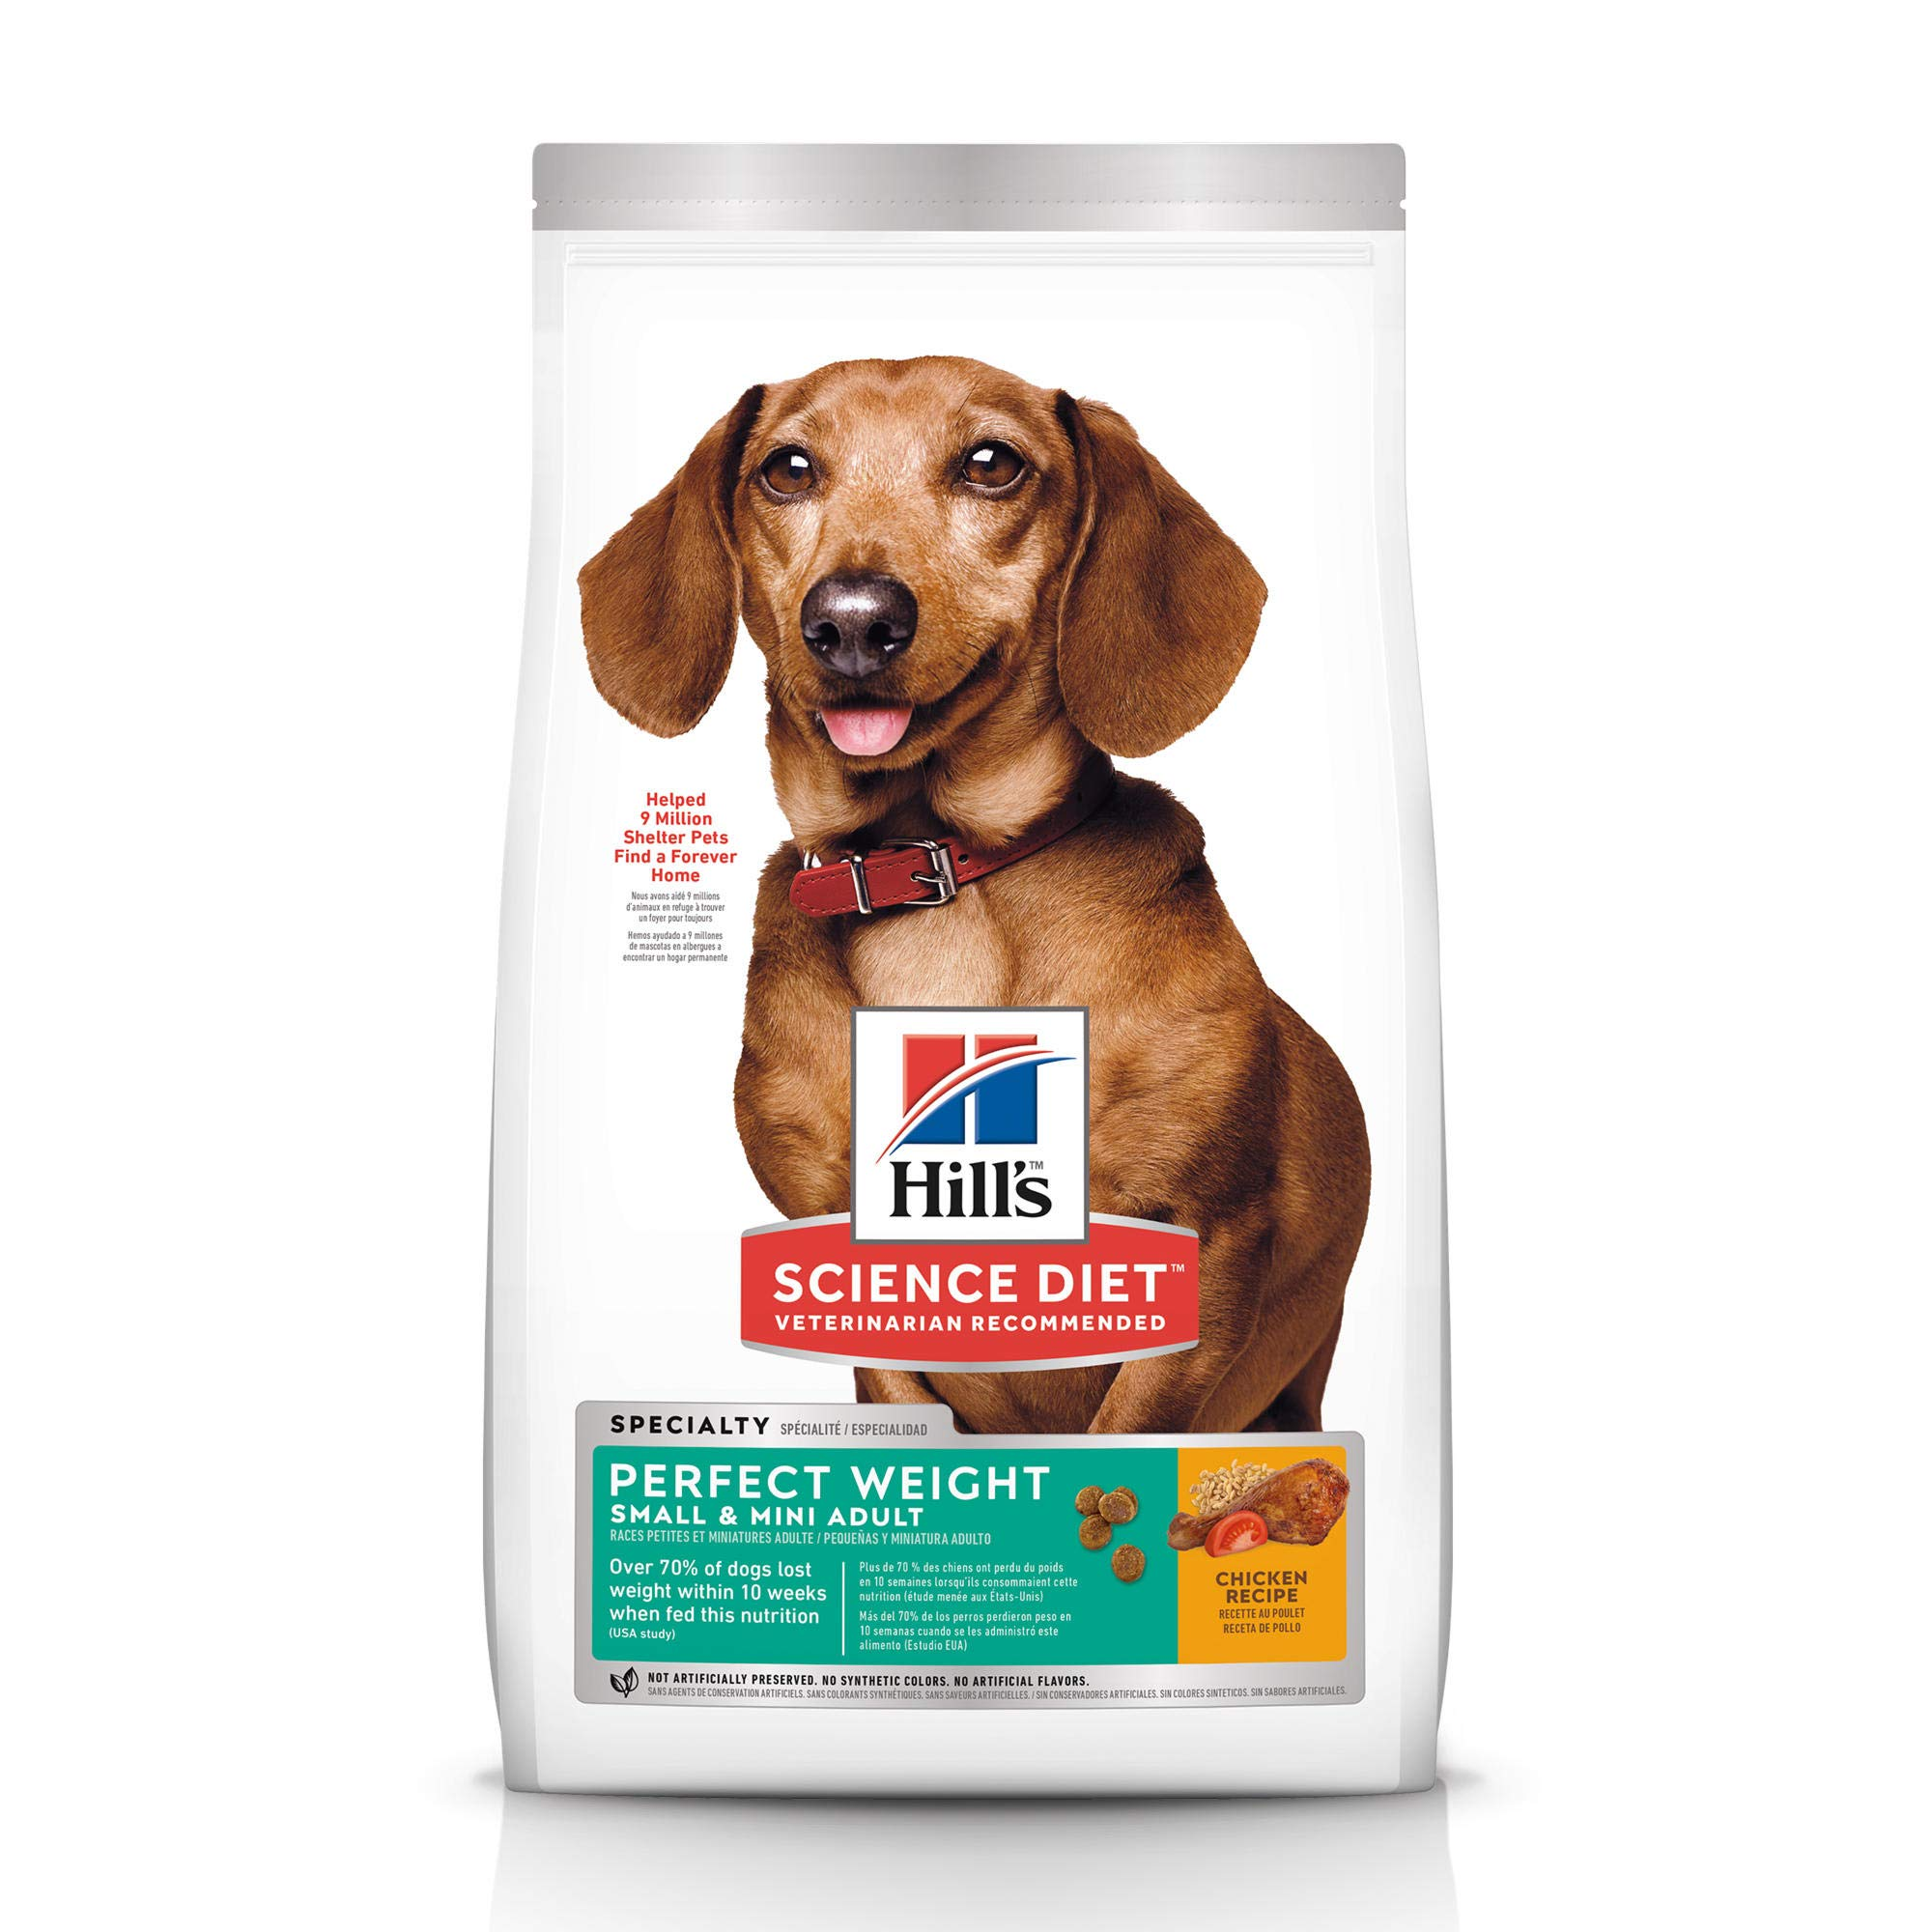 Hill's Science Diet Dry Dog Food, Adult, Perfect Weight for Weight Management, Small & Mini Breeds, Chicken Recipe